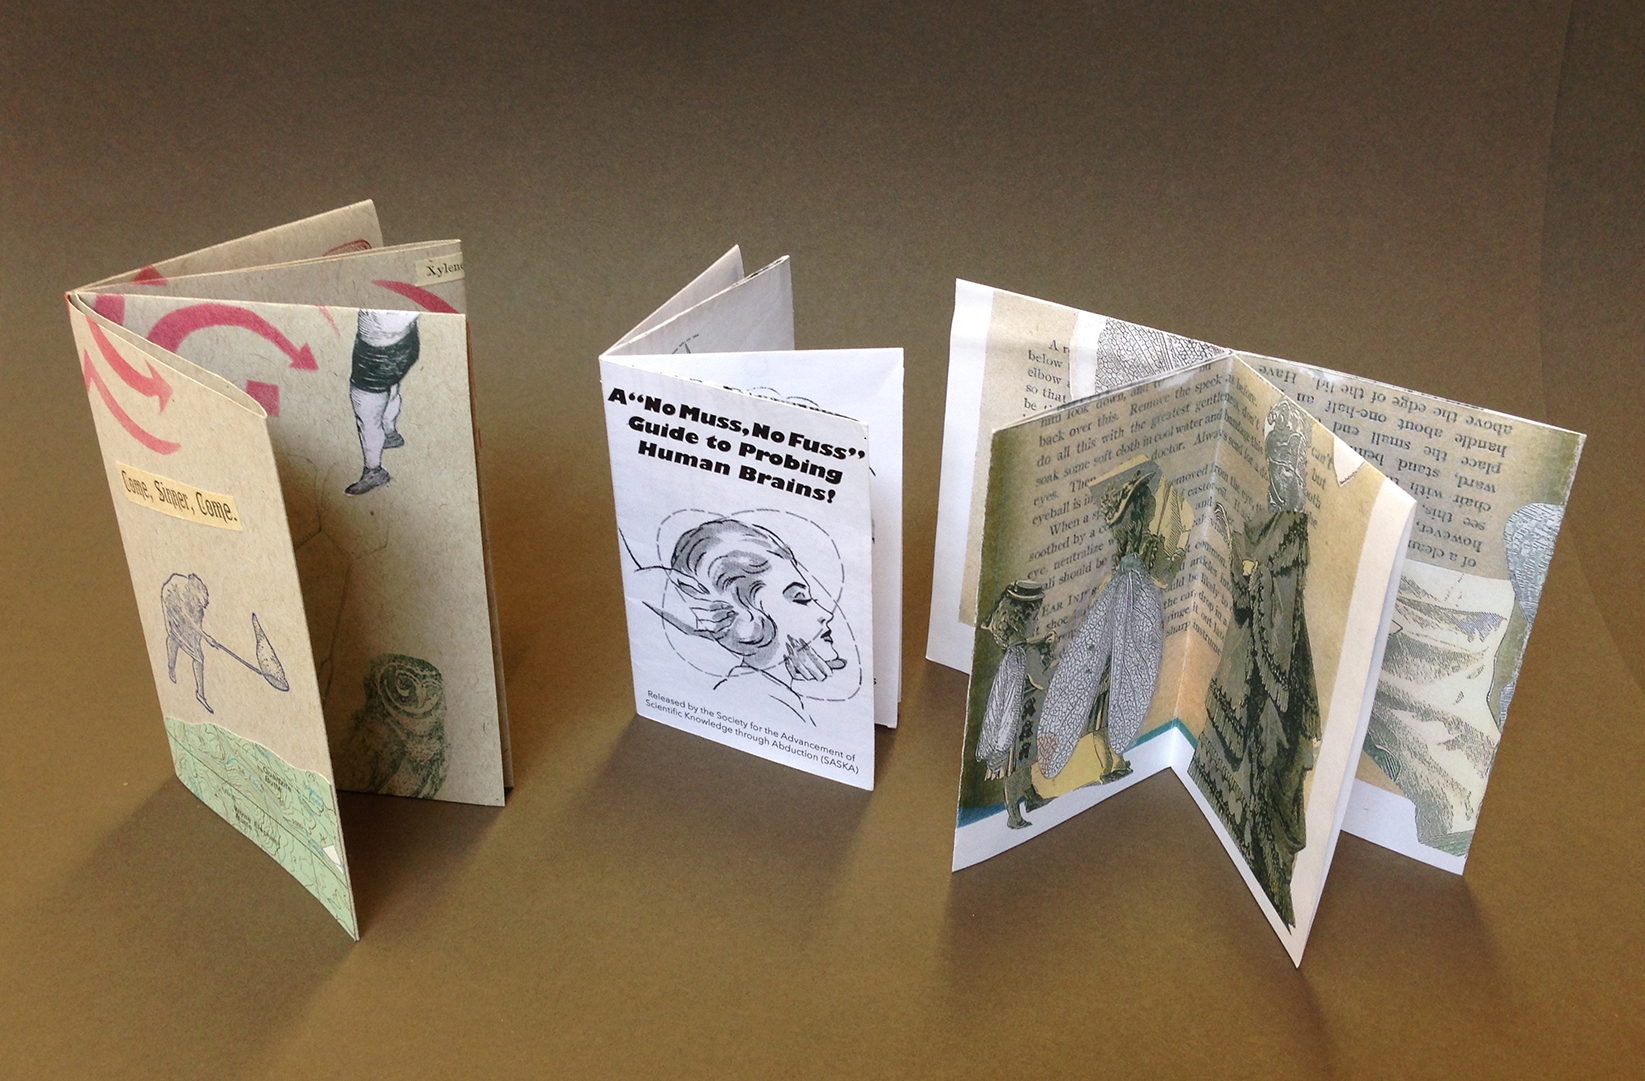 3 books each made from one sheet of paper